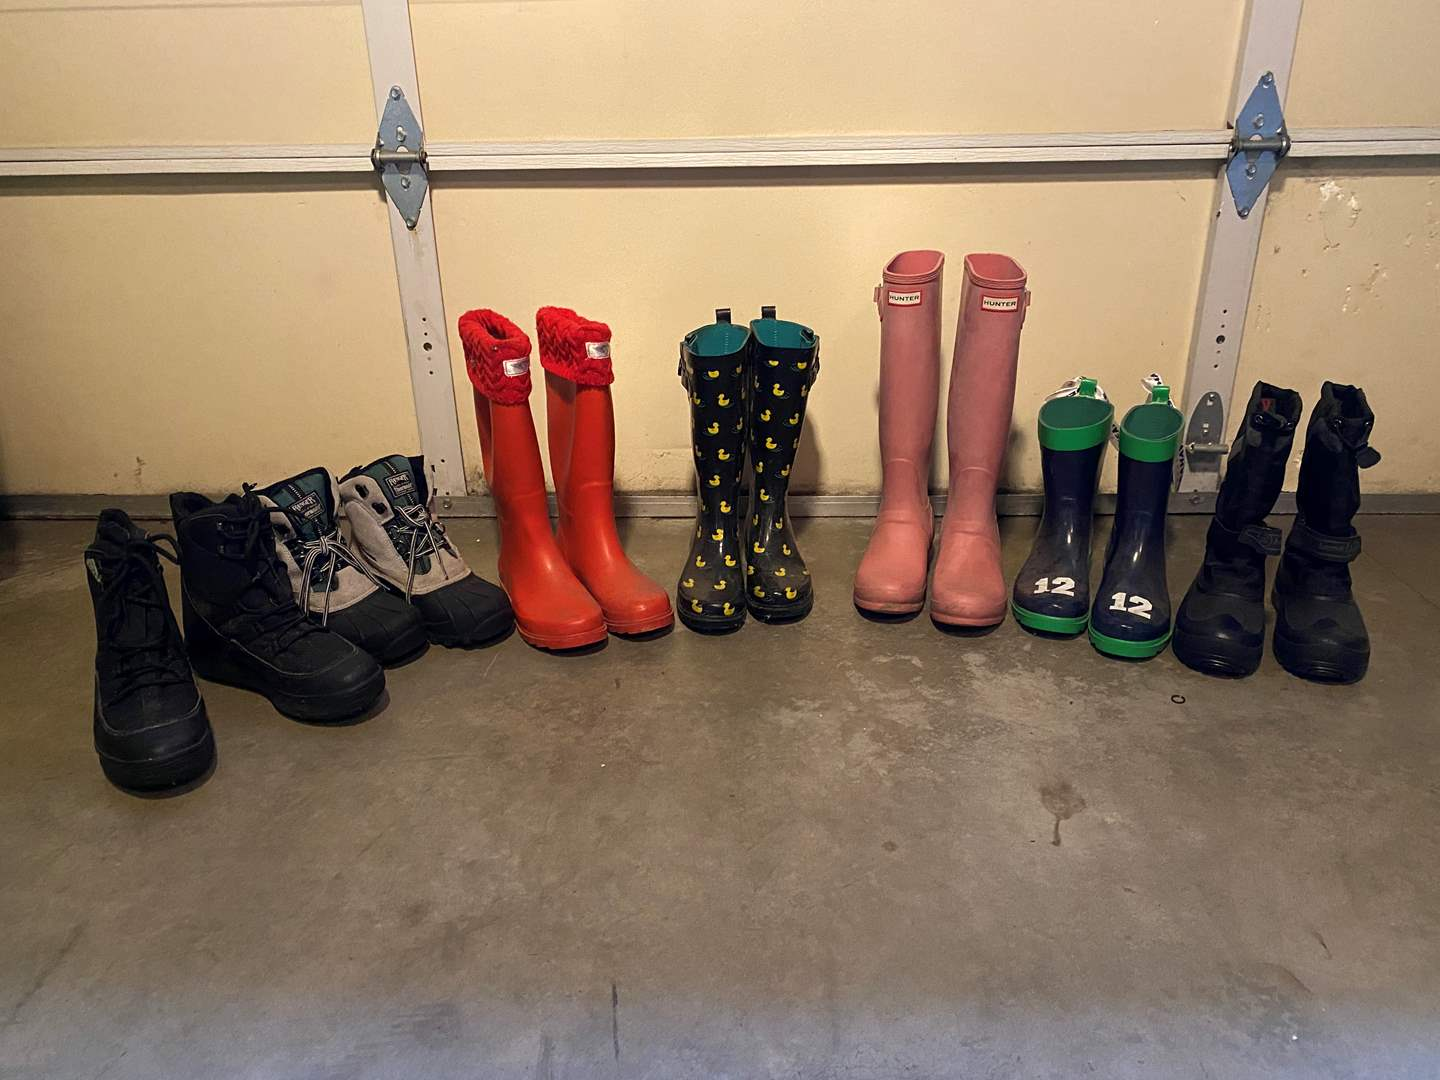 Lot # 163 - Adidas Spiked Lawn Shoes, Woman's Rubber Boots & Other Misc. Boots (main image)